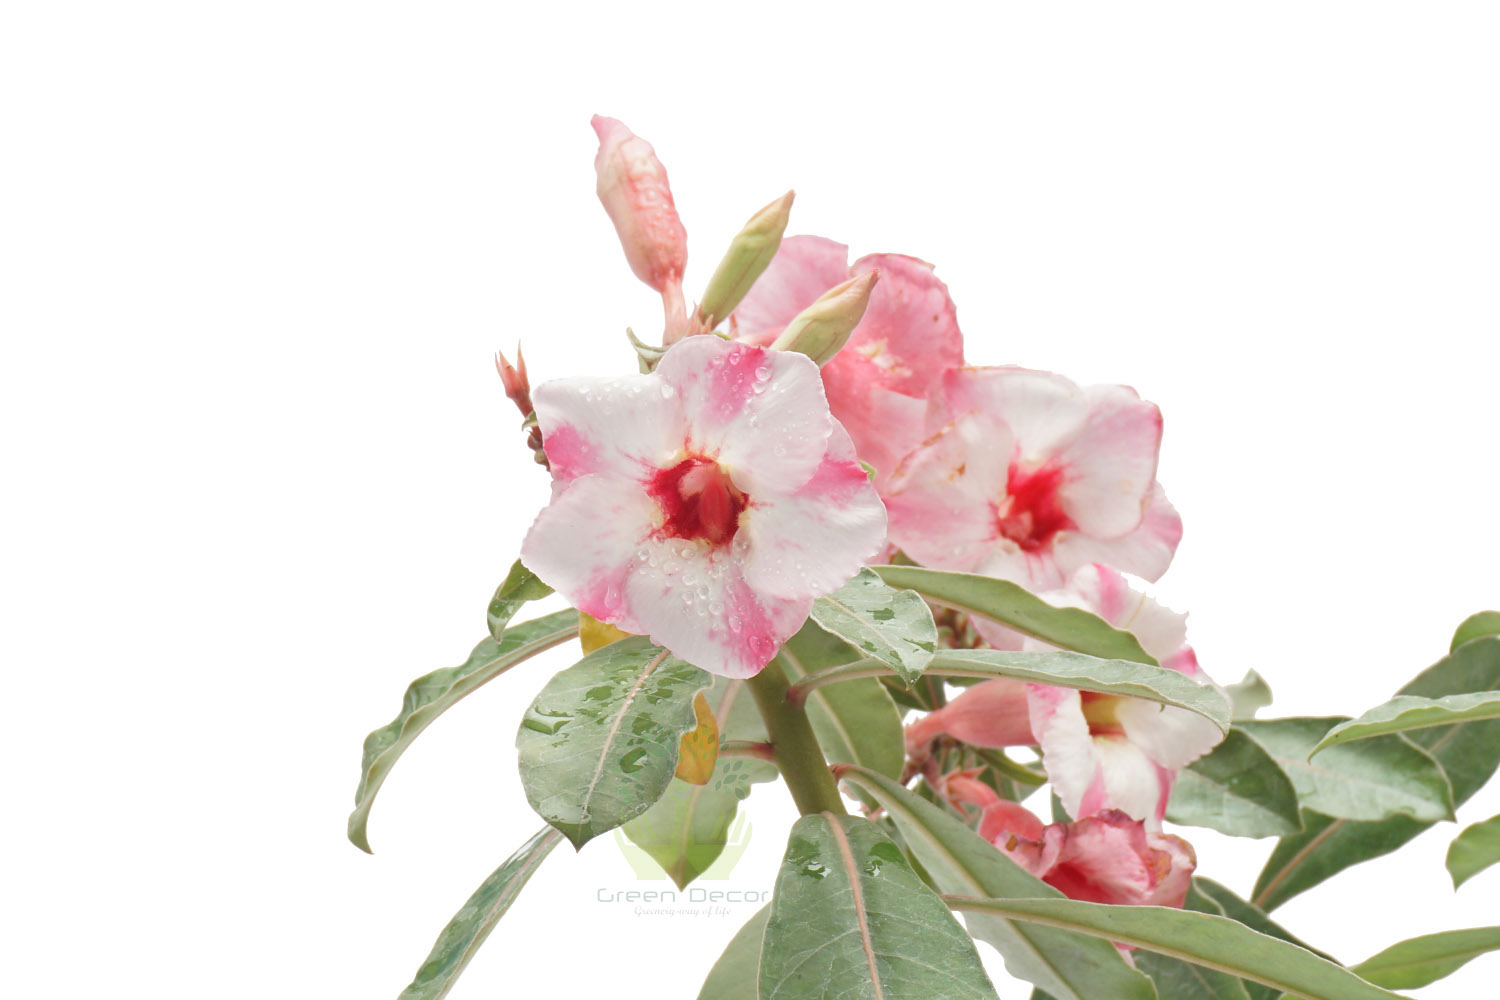 Buy Adenium Obesum Plants , White Pots and seeds in Delhi NCR by the best online nursery shop Greendecor.